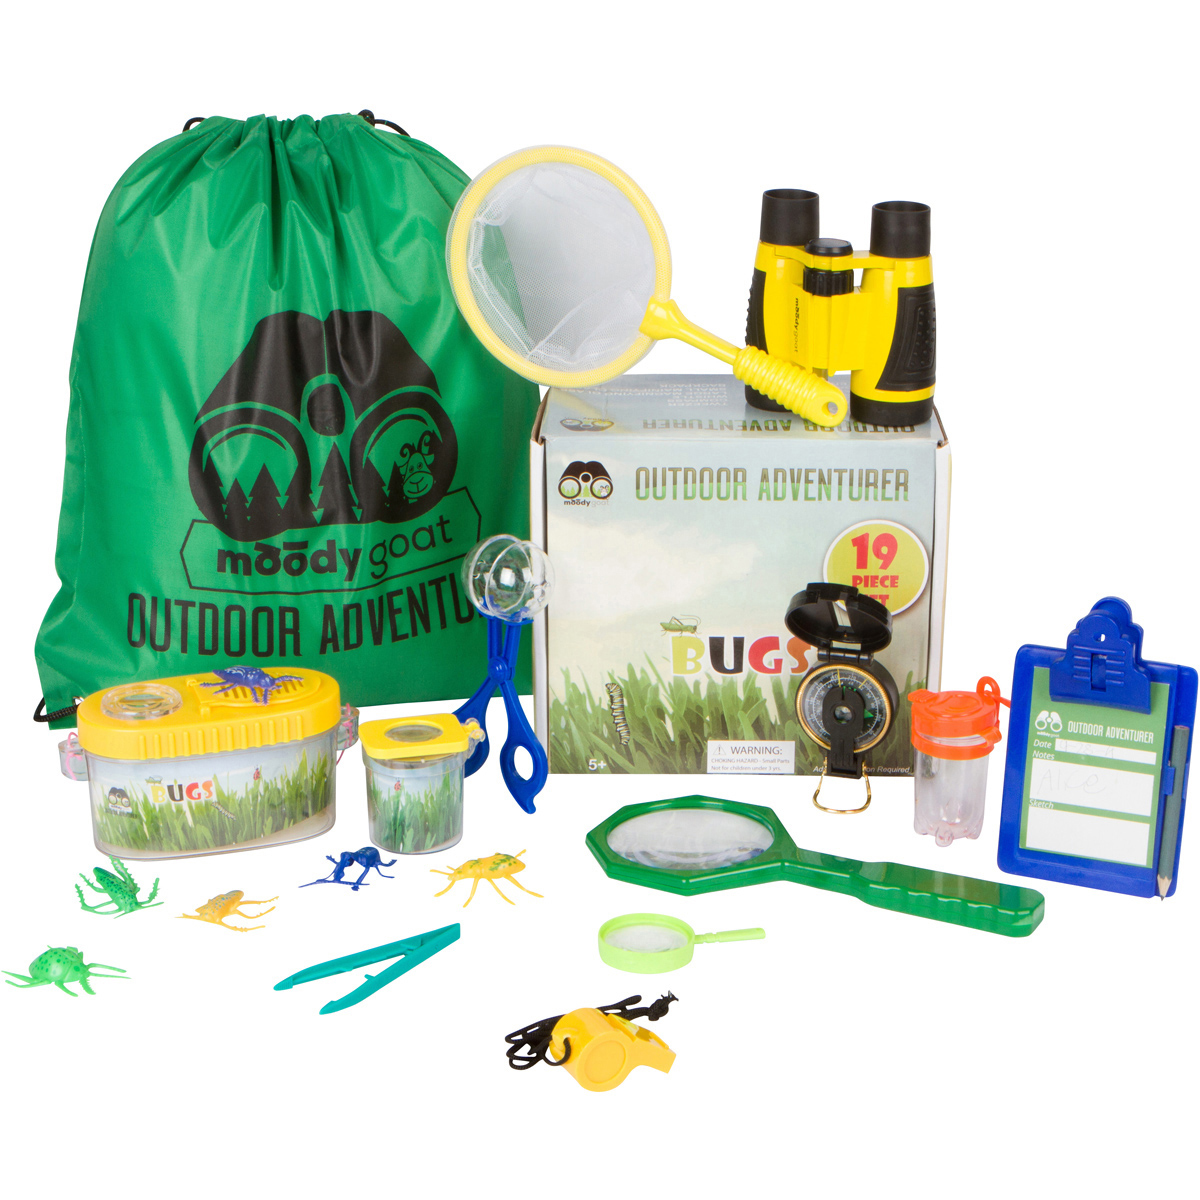 Moody Goat's Adventure Set 19Pc Backyard And Insect Bug Exploration by